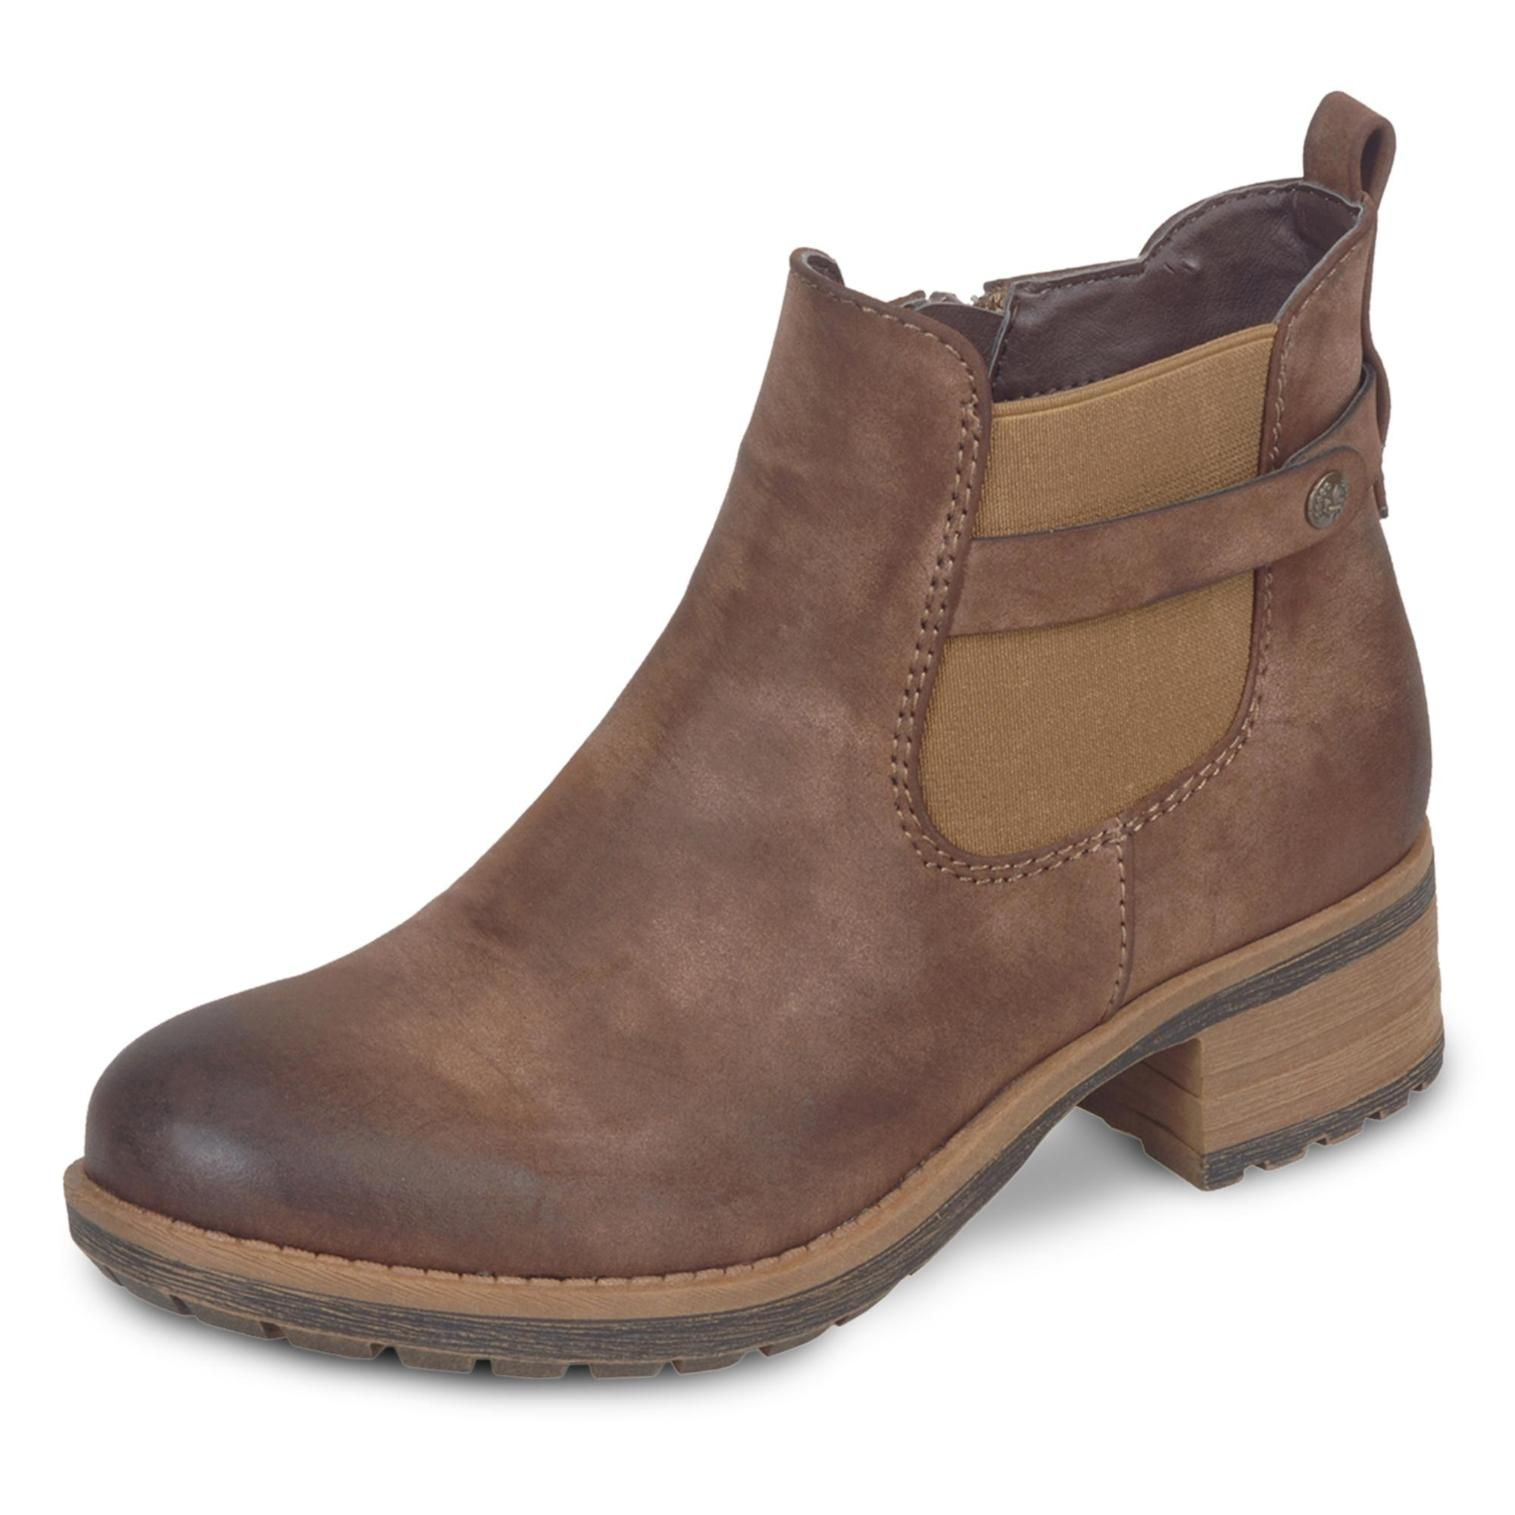 huge selection of 5bf34 77932 Rieker Chelsea Boots in 2019 | Comfy Shoes | Chelsea boots ...